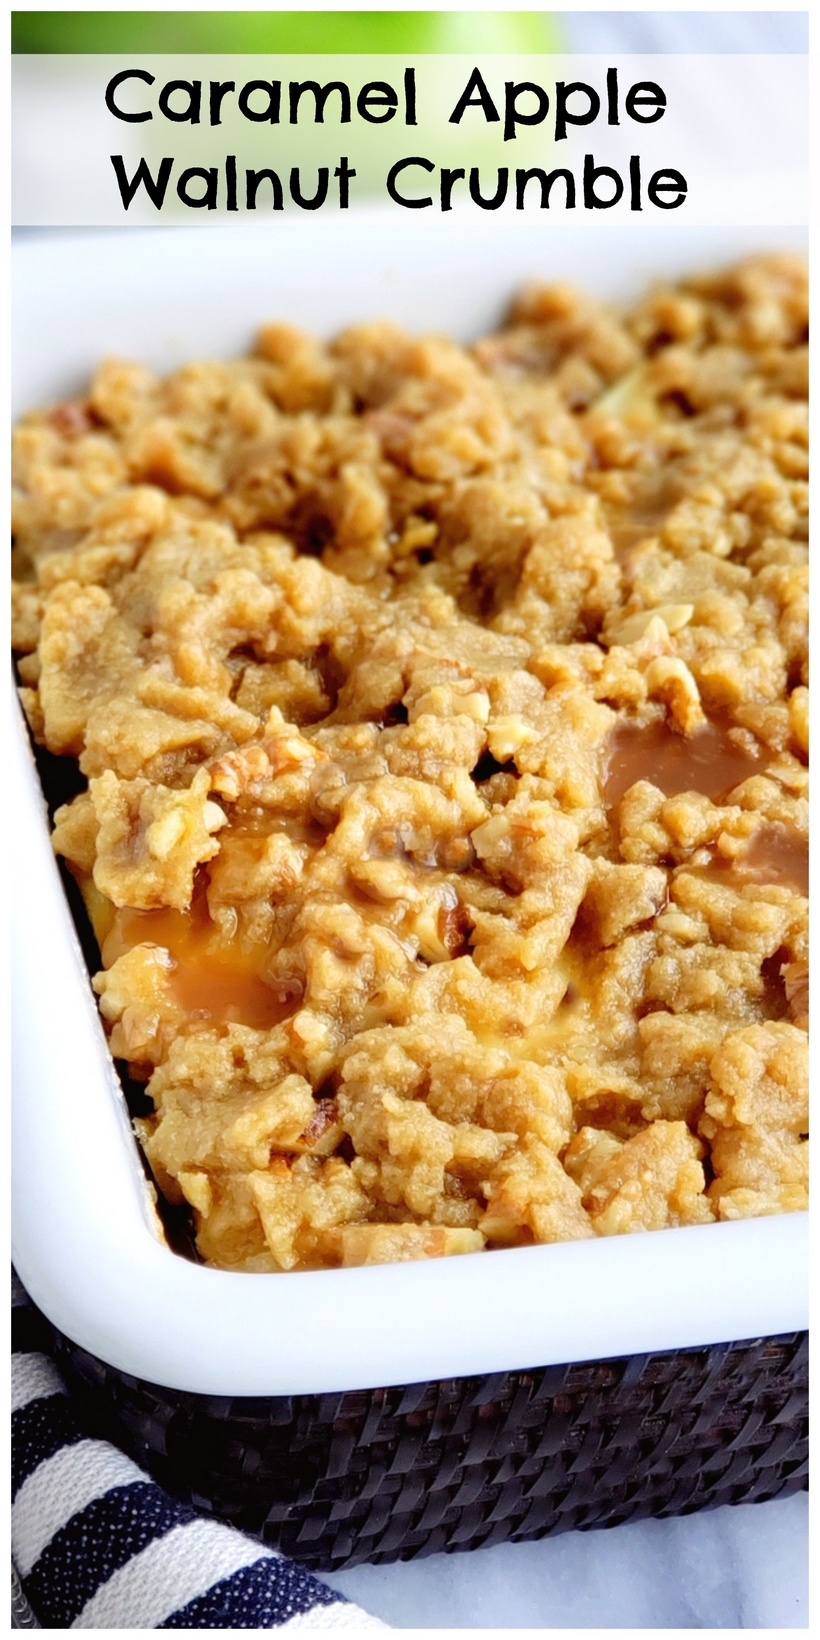 An easy apple crumble recipe you will not be able to resist! The crunchy walnut crumble topping with drizzled caramel makes this apple dessert and crumble recipe a winning combination. When I think of apple recipes, specifically apple desserts, a crumble always to mind. #noblepig #applecrumble #applecrumblerecipe #easyapplecrumble #crumbletopping #crumbletoppingrecipe #crumblerecipe #applerecipes #appledesserts #easyapplerecipes #dessertapplerecipes via @cmpollak1